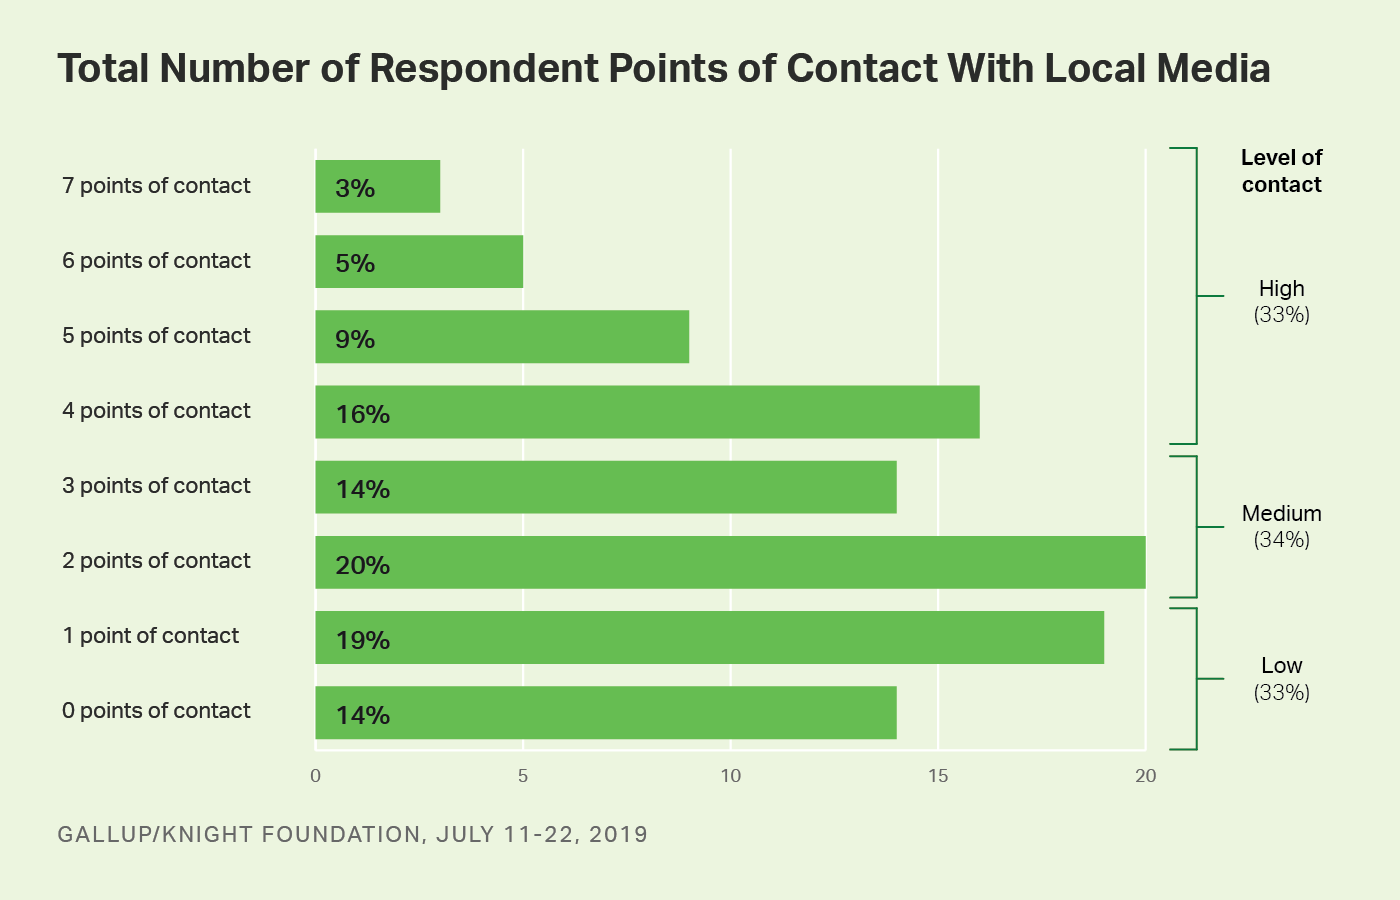 Bar graph. The number of points of contact (from 0 to 7) that Americans have had with local media.